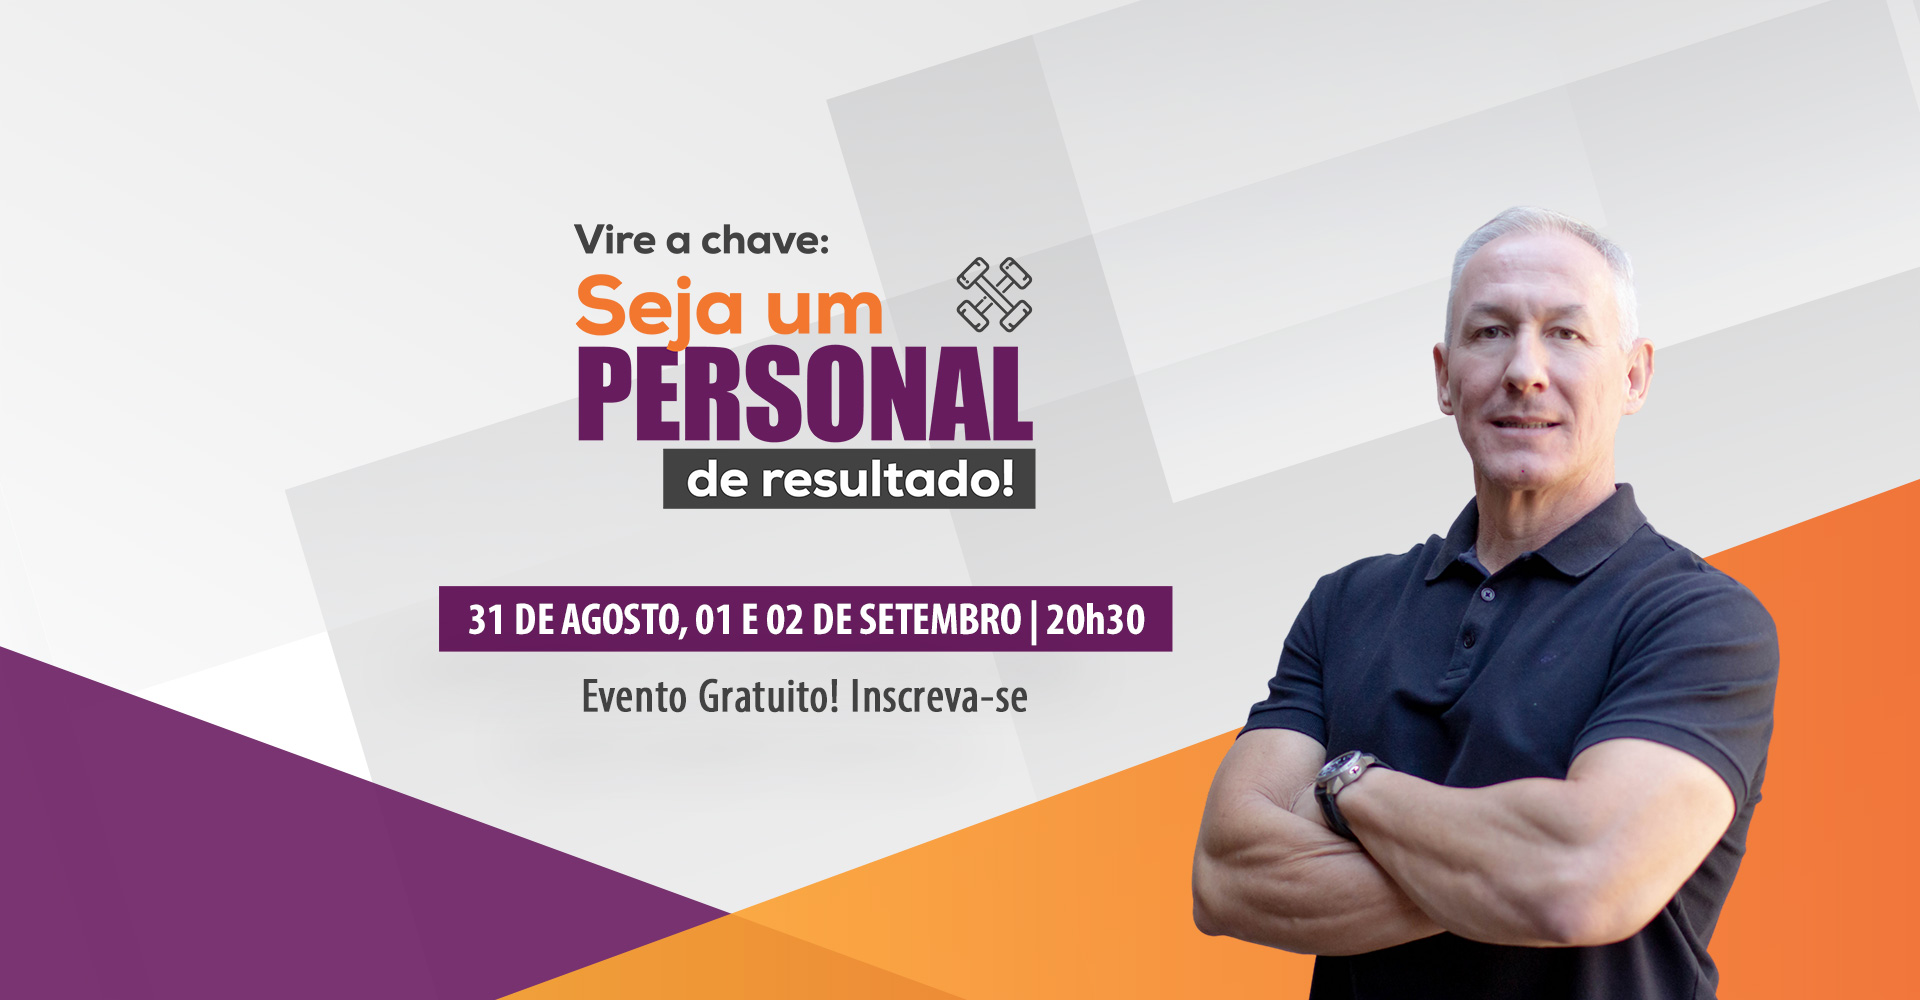 banner-site-ifbb-vire-a-chave-evento-gratis-personal-trainer-mauricio-arruda